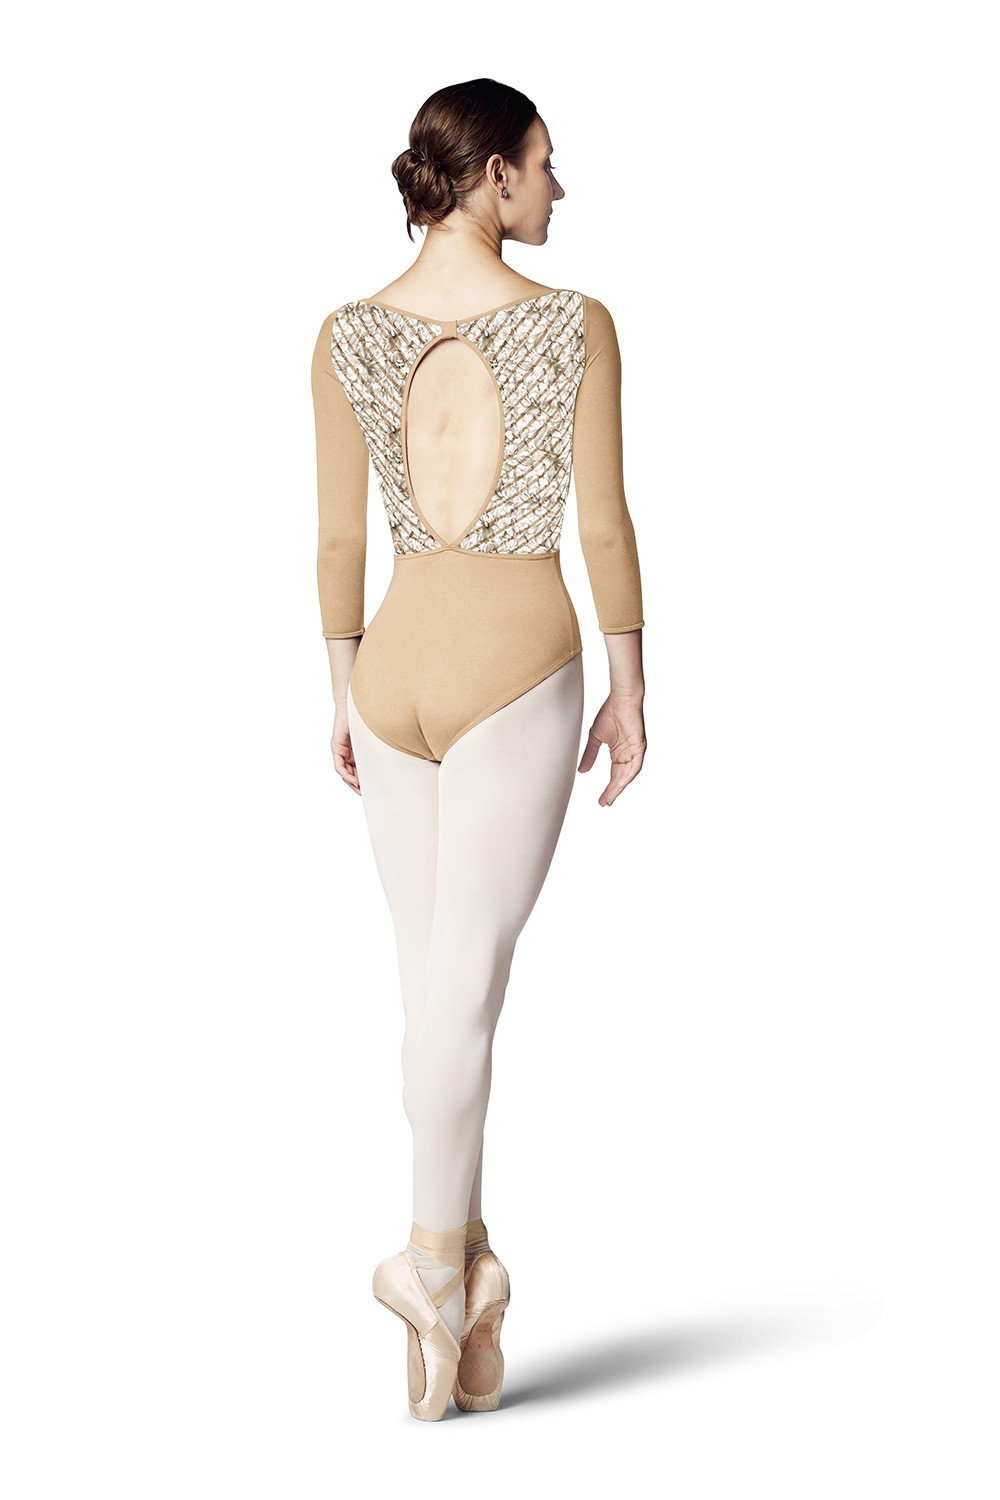 Candace Women's Dance Leotards